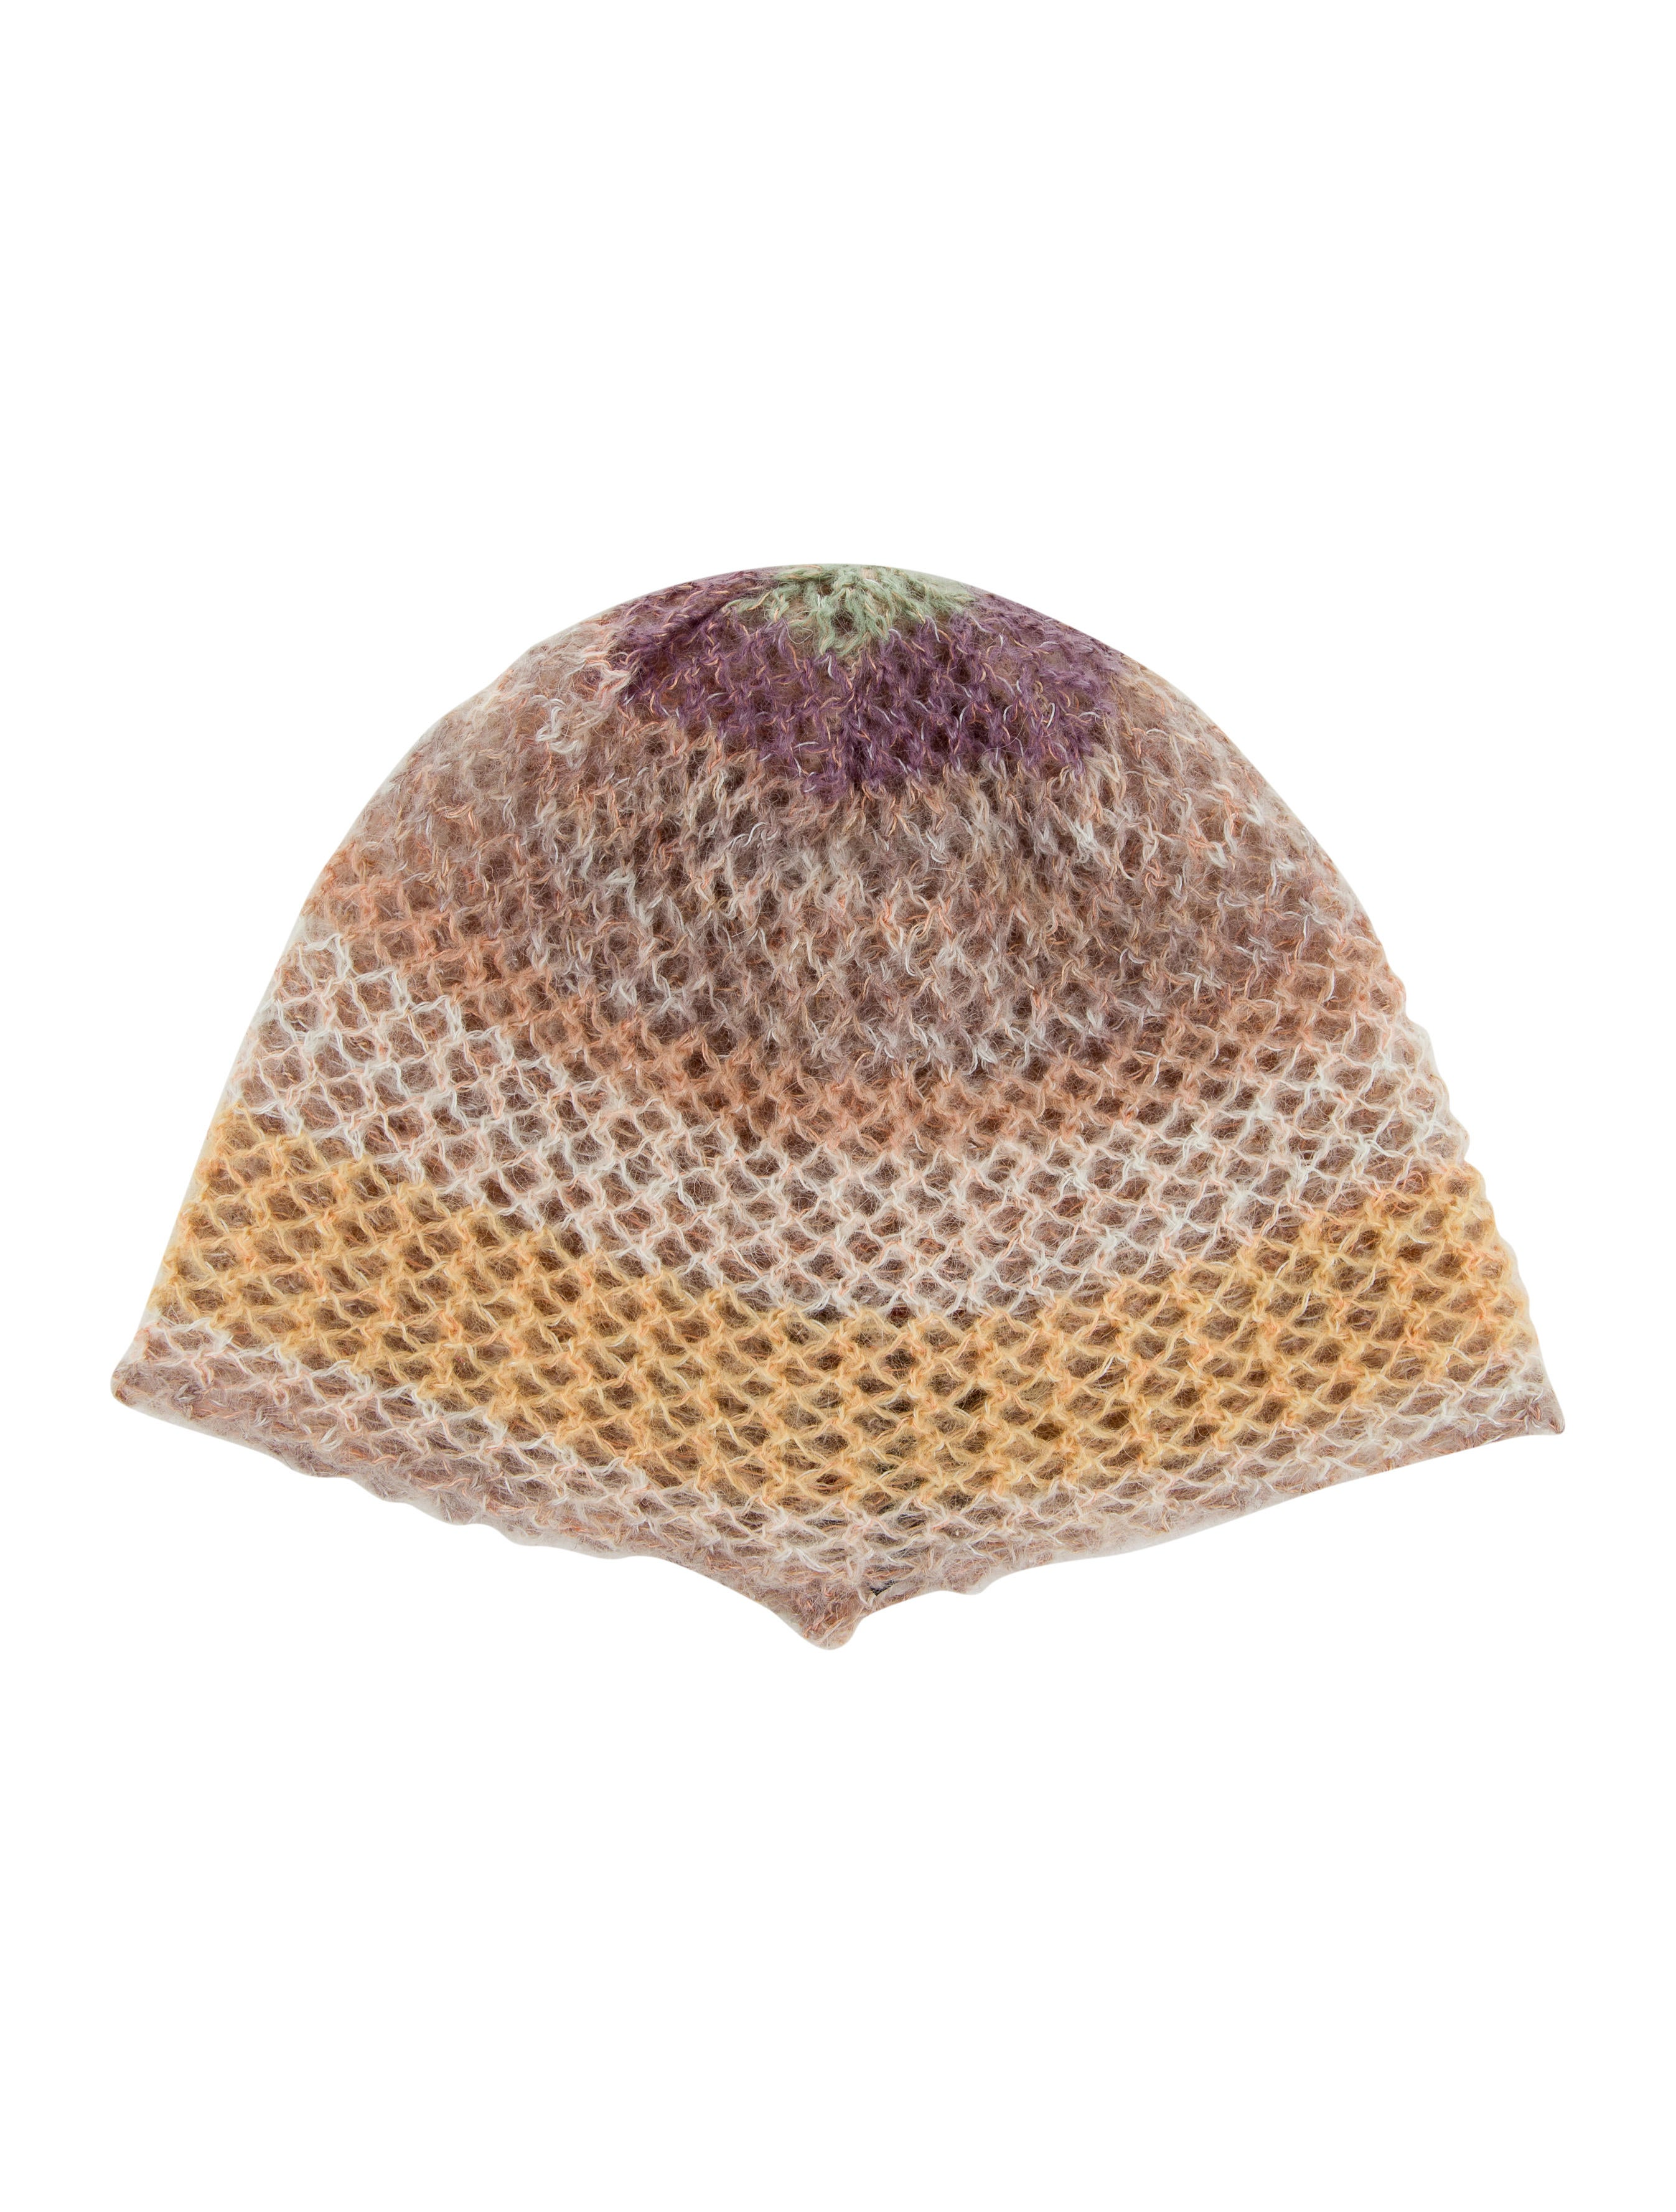 Missoni Open Knit Beanie - Accessories - MIS42551  11ec18c2d15